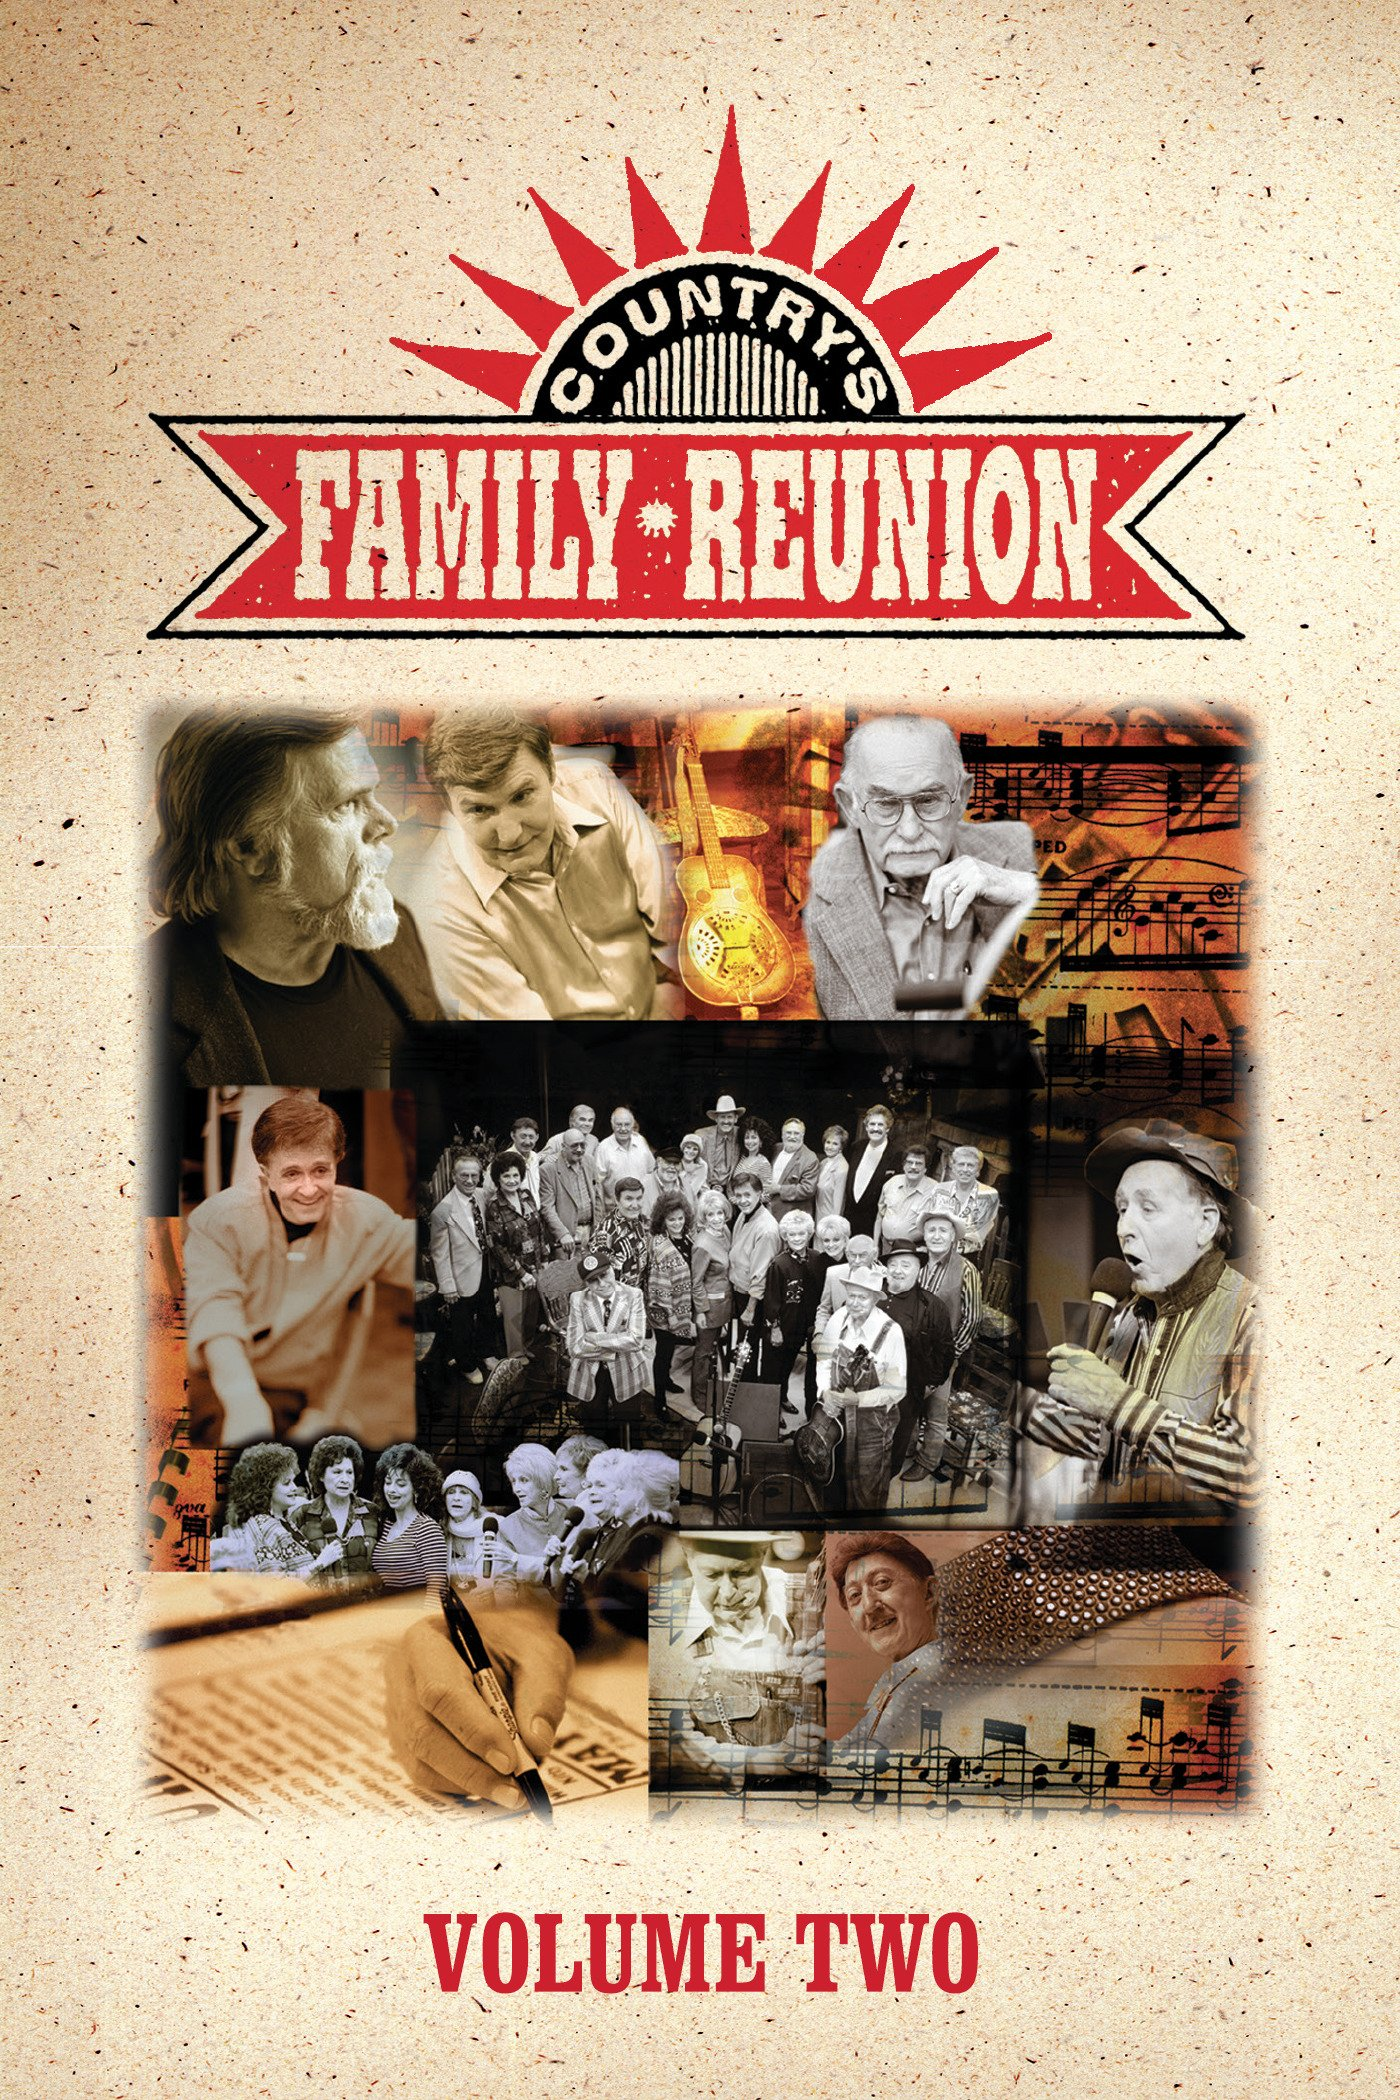 Country's Family Reunion 1: Volume Two